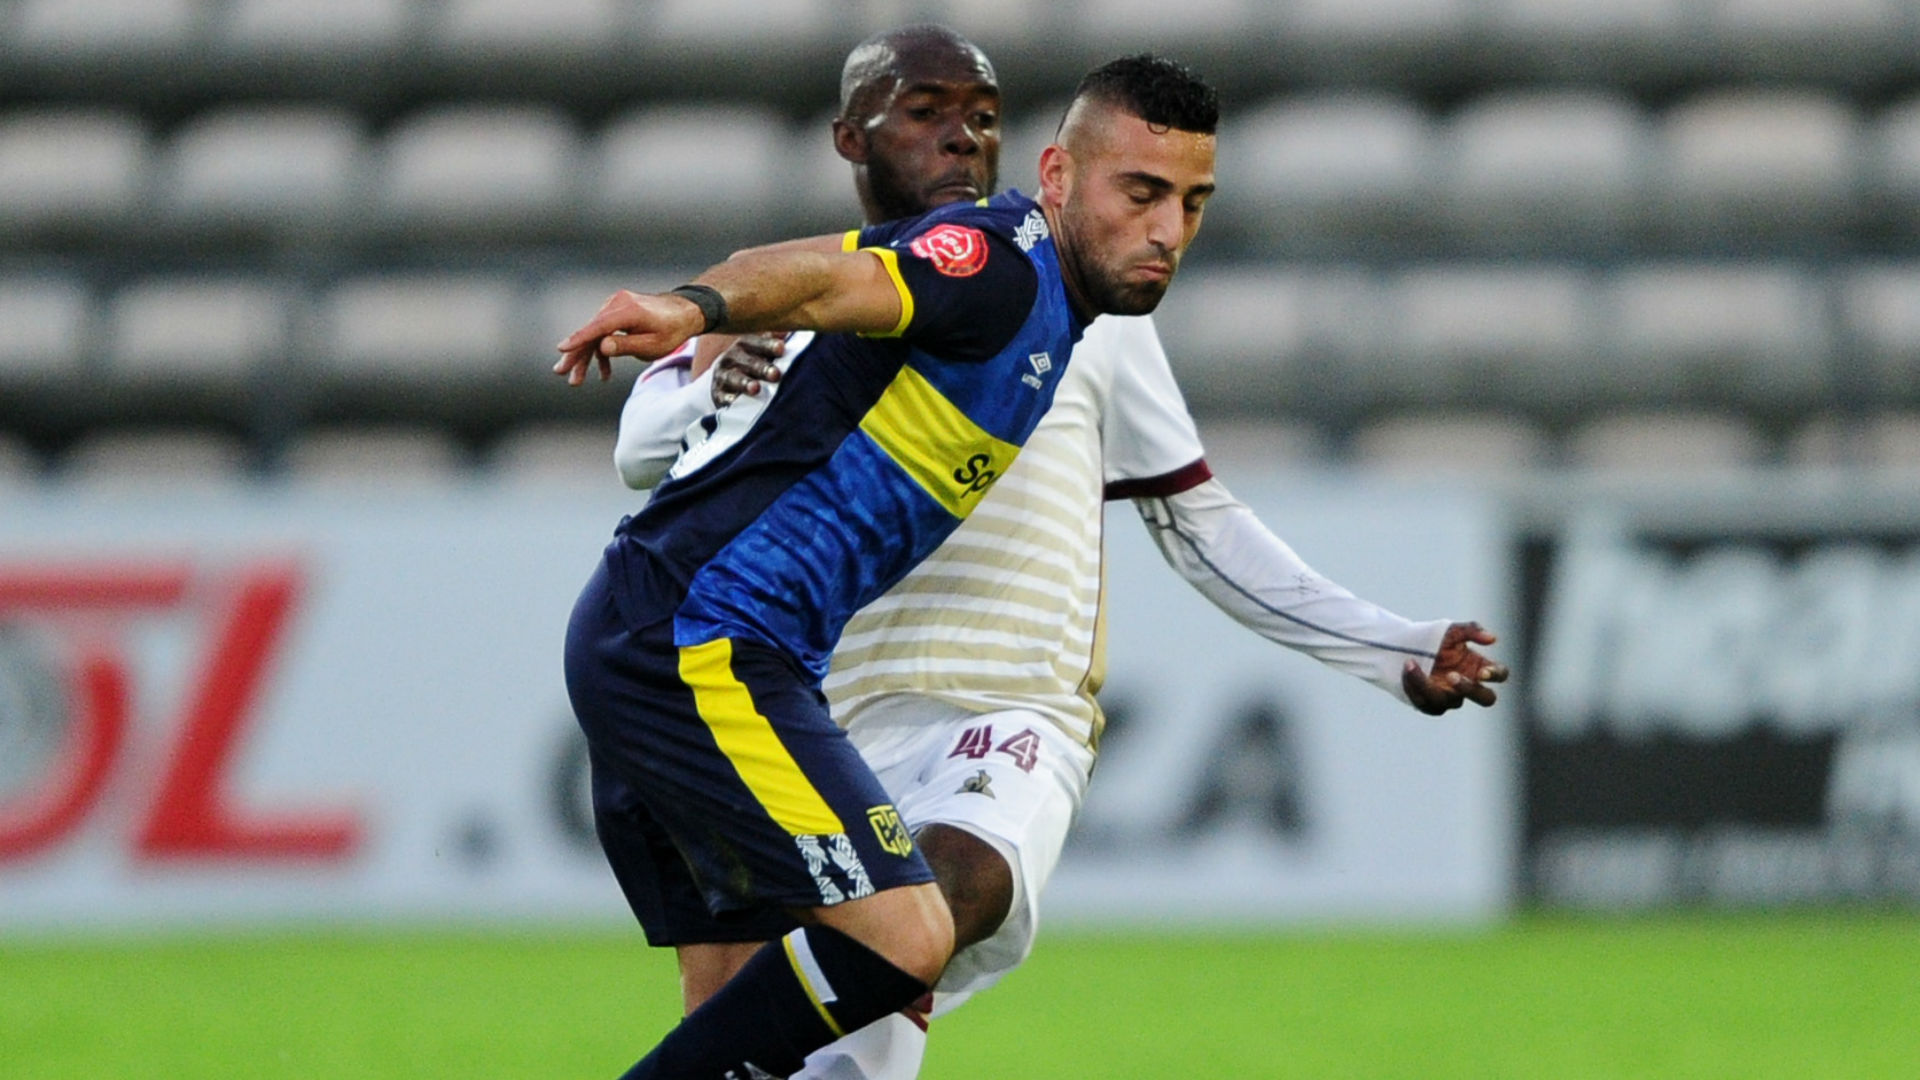 Christopher David of Cape Town City is challenged by Junior Awono of Stellenbosch FC, August 2019